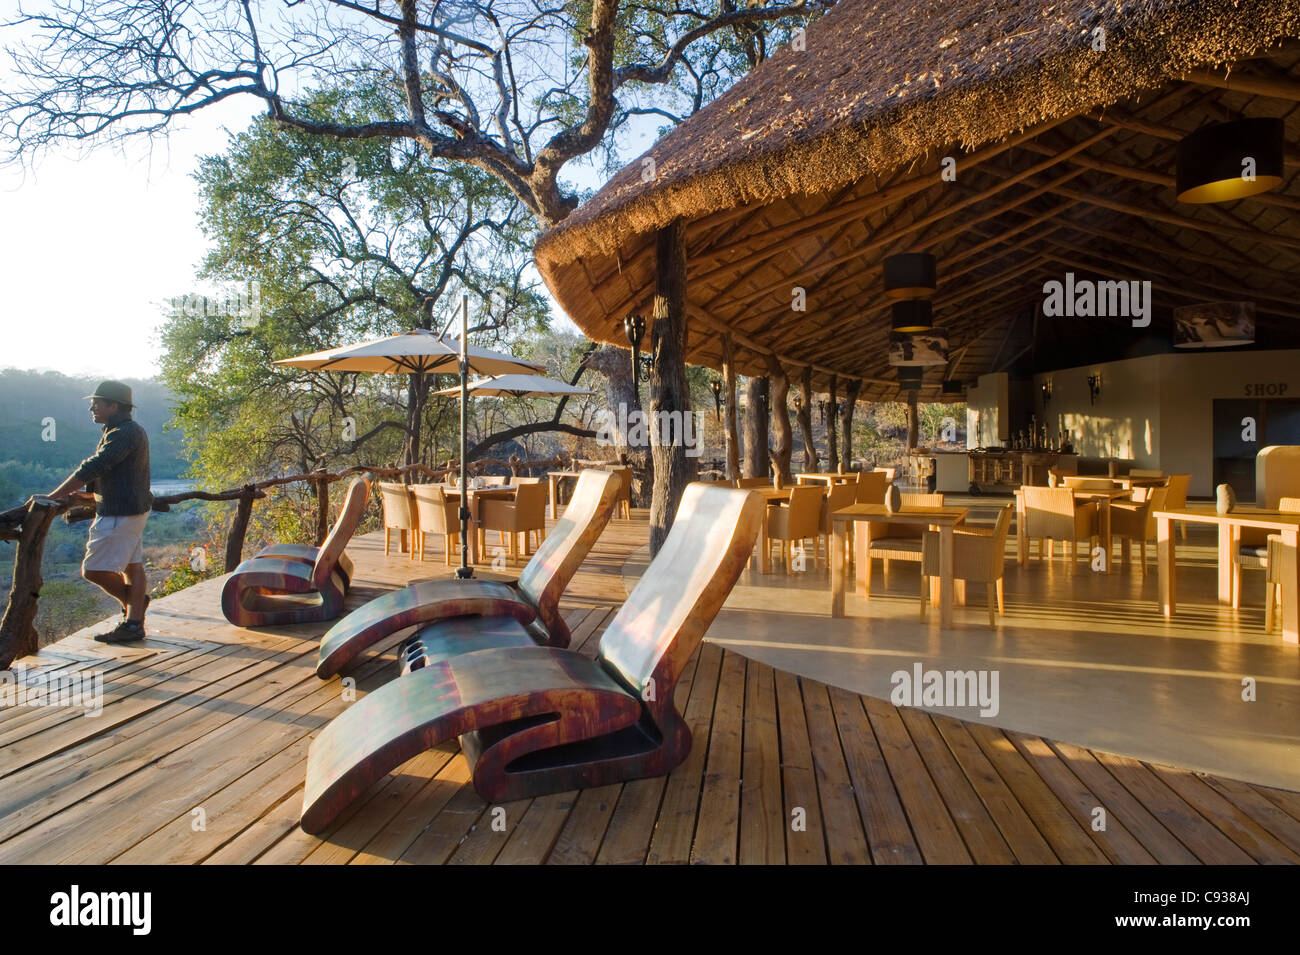 Malawi, Majete Wildlife Reserve. The deck and main dining area of  Mkulumadzi safari lodge - Stock Image